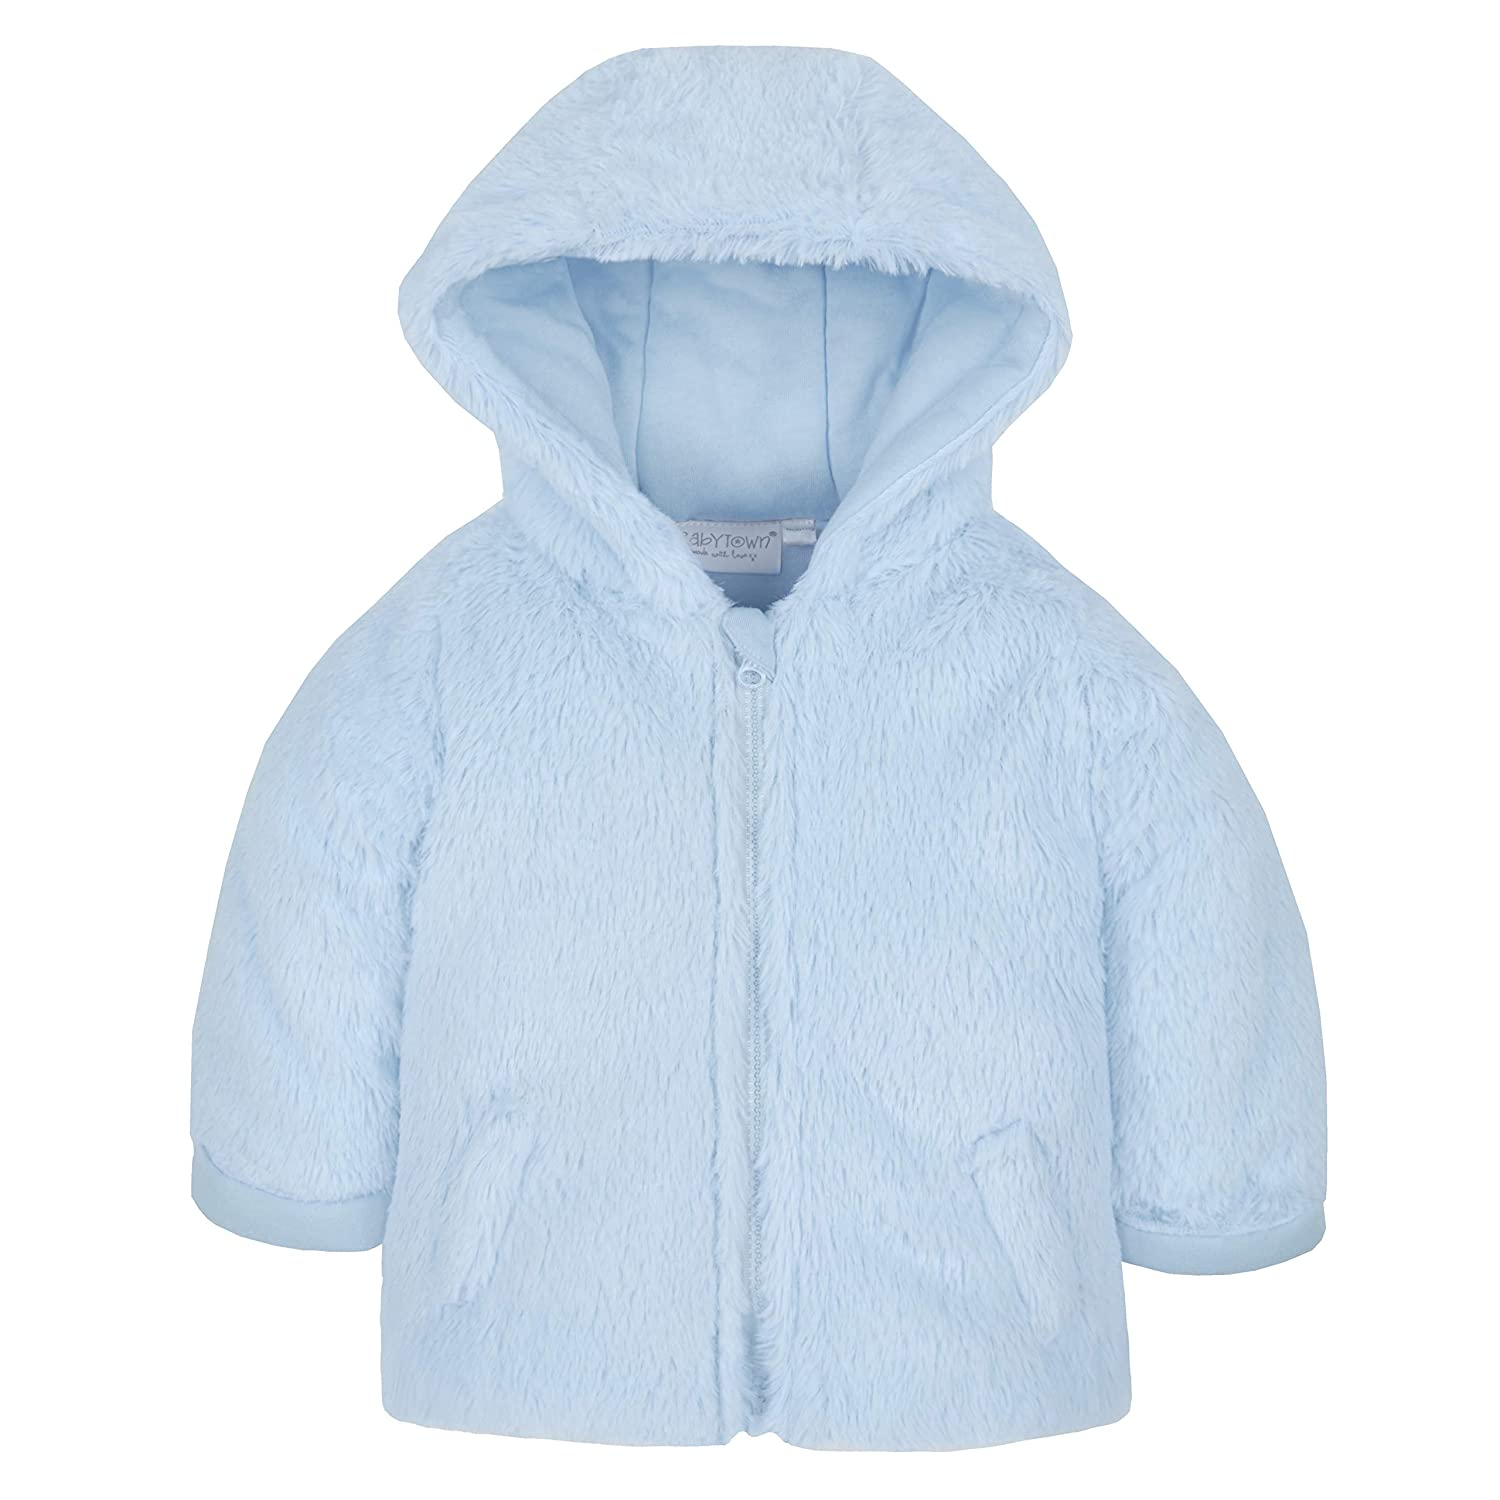 Metzuyan Unisex Baby Fluffy Winter Coat with Hood /& Zip Blue 6-9 Months